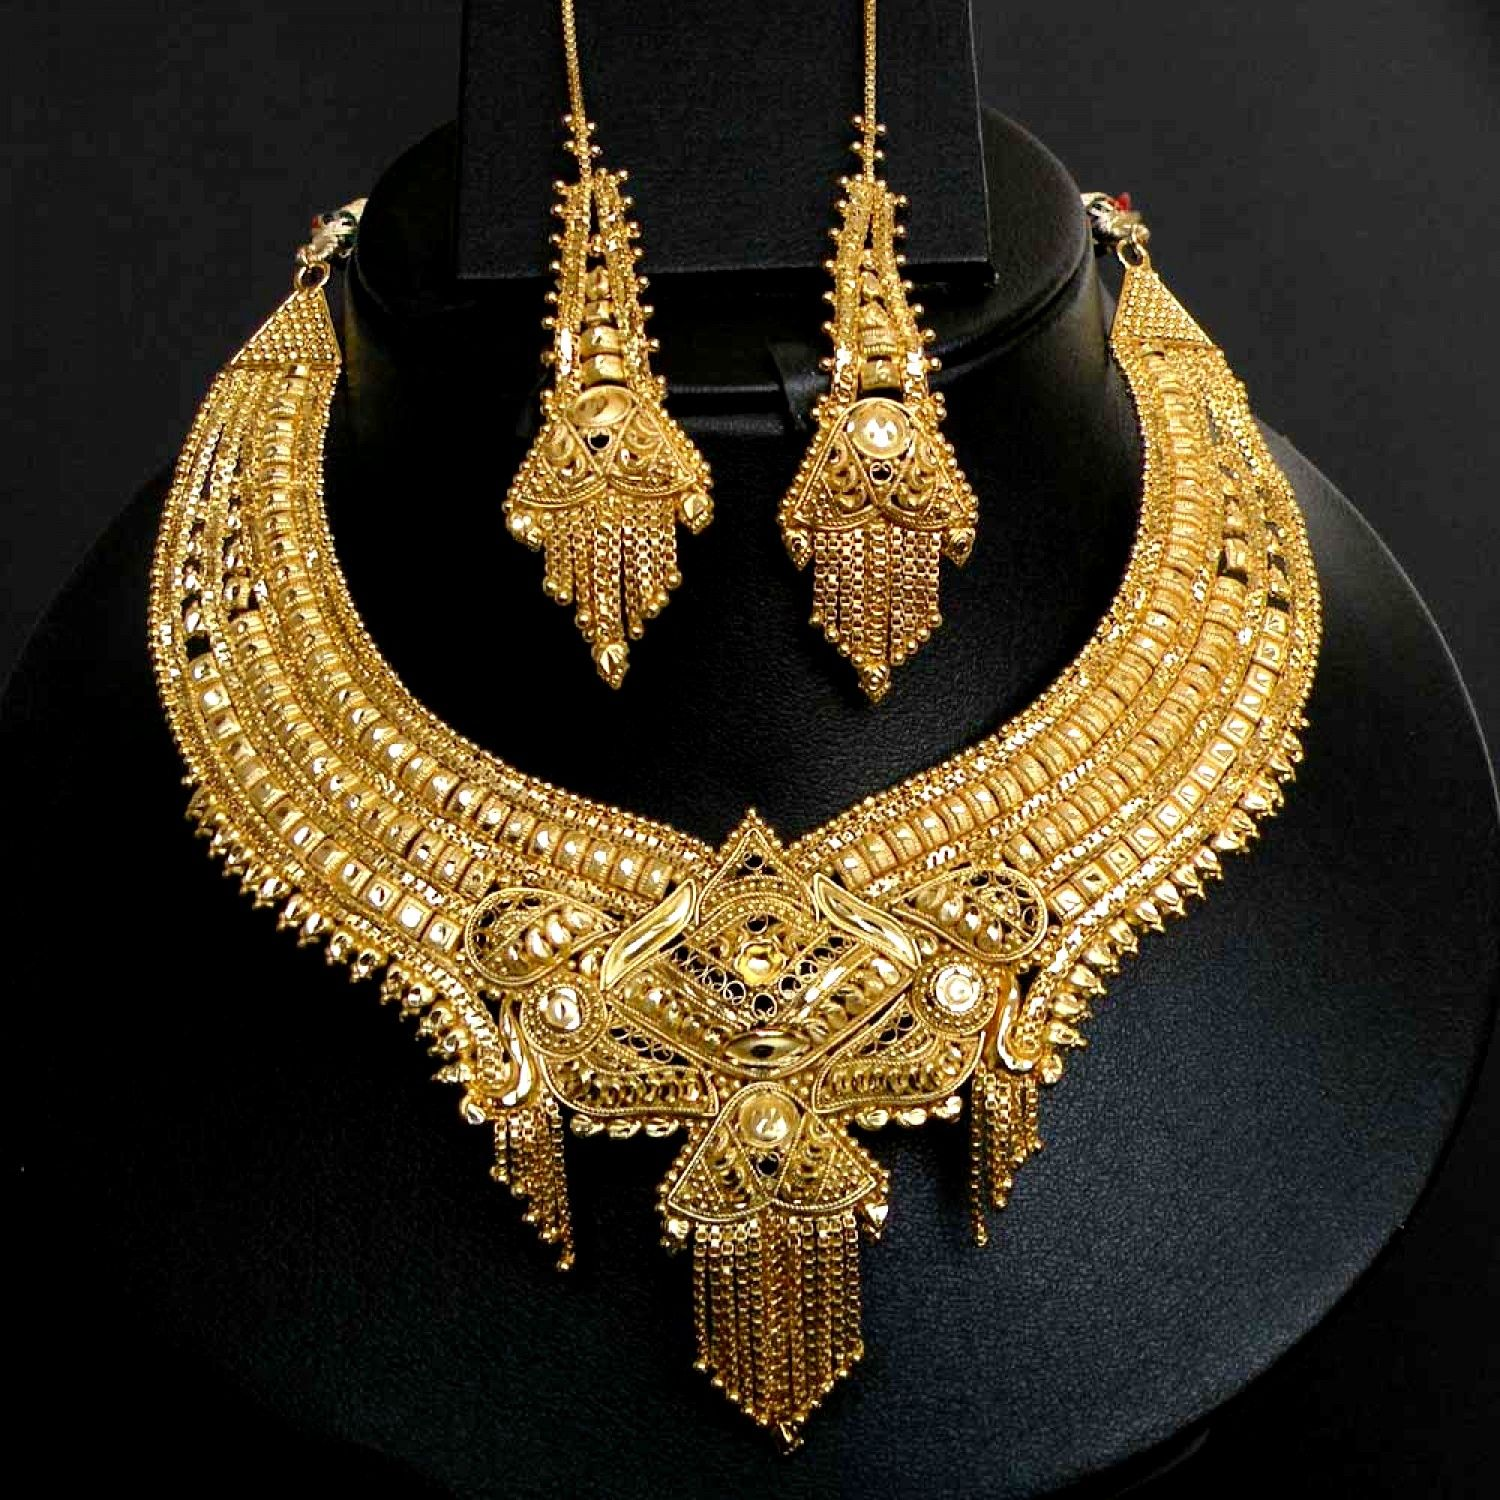 Photos of gold necklace